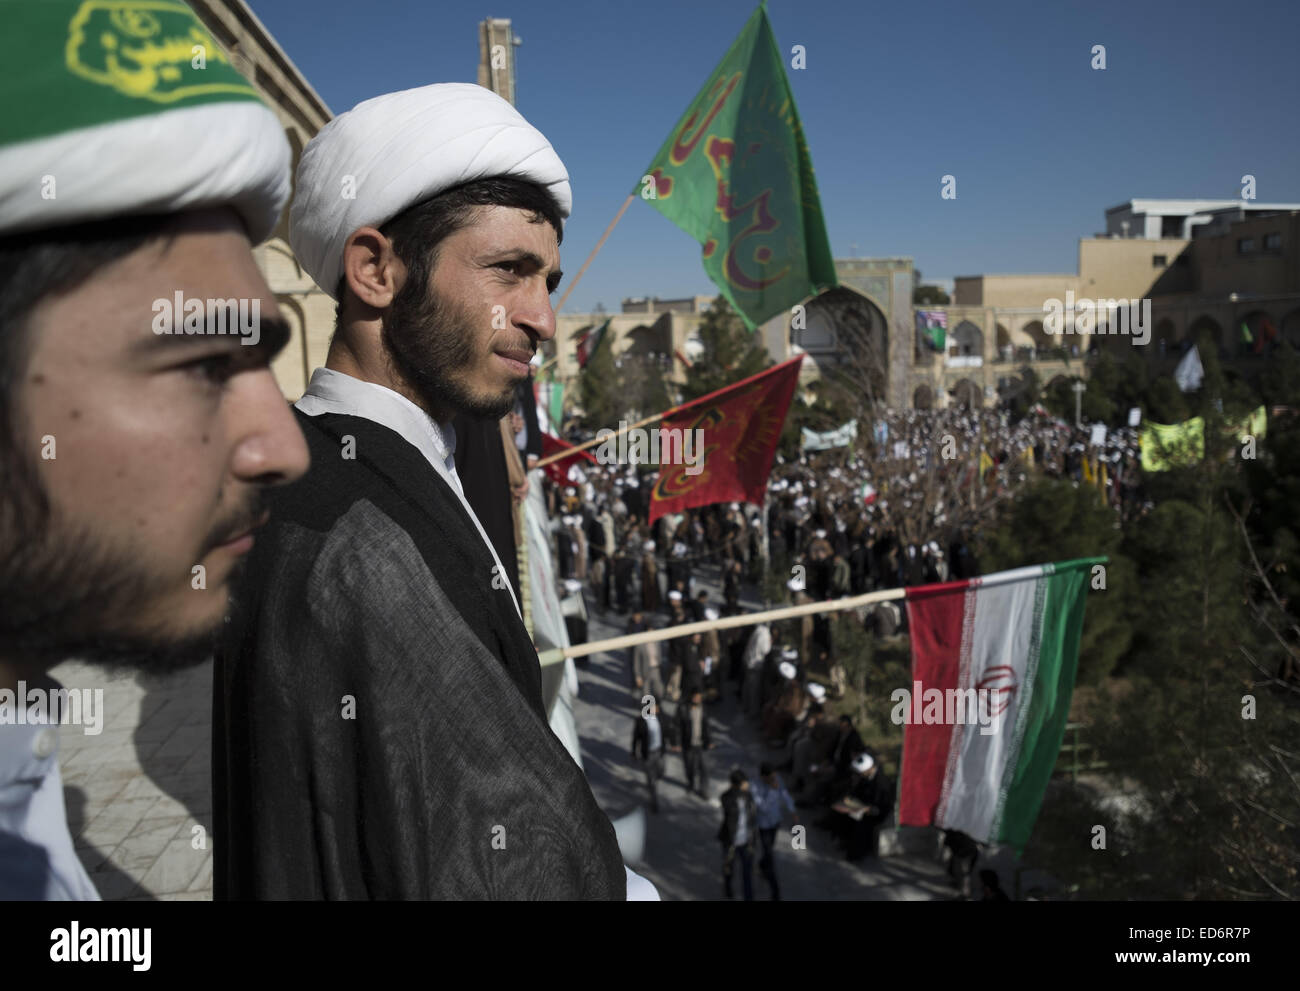 Qom, Iran. 29th Dec, 2014. December 30, 2014 - Qom, Iran - Two Iranian clerics look on while attending a rally to - Stock Image